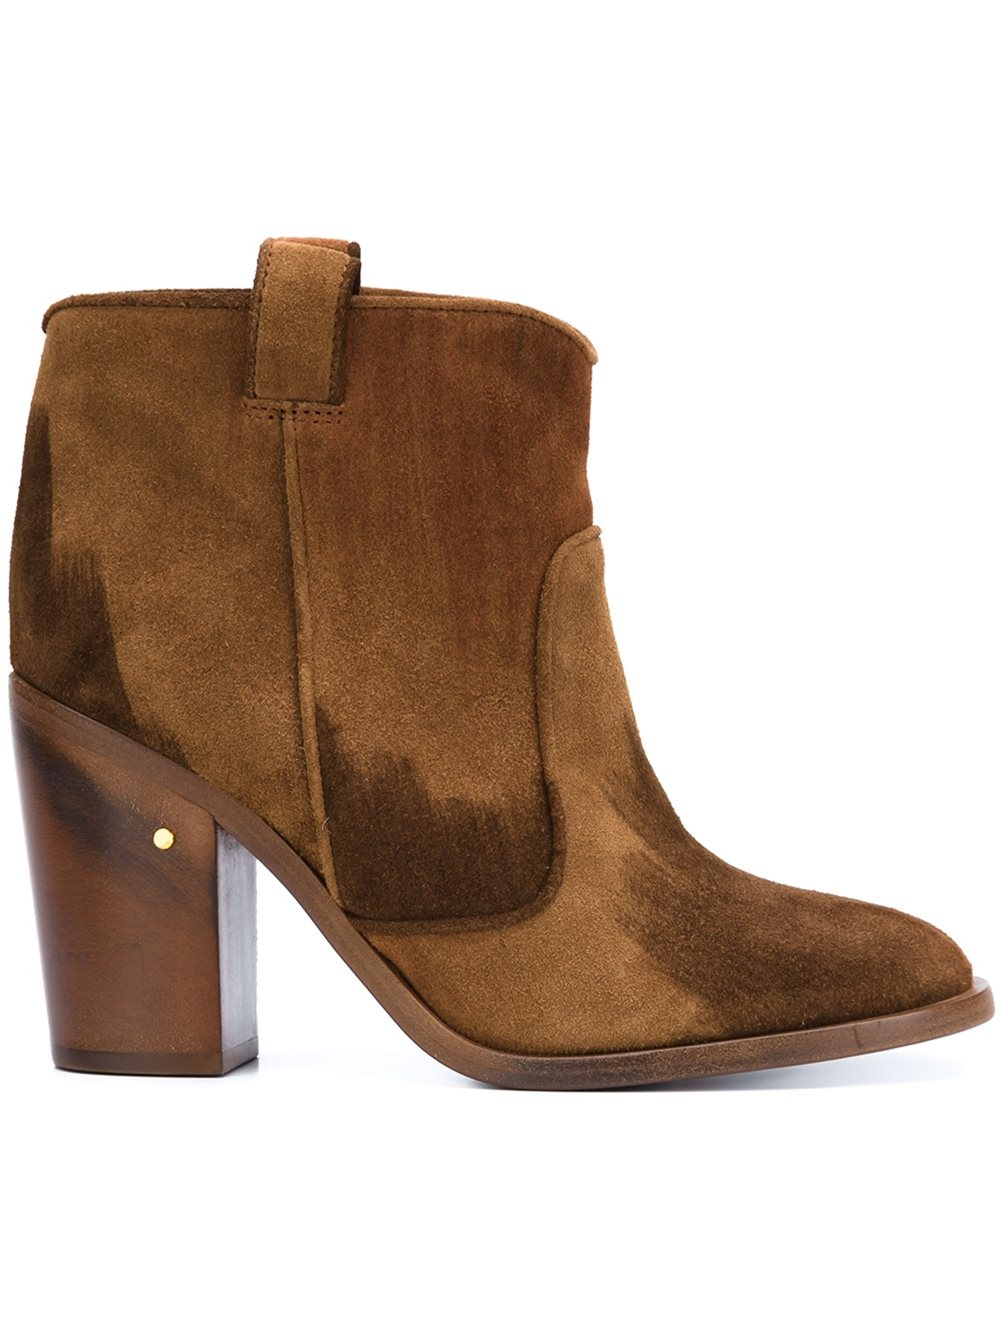 Laurence dacade Pete Suede Ankle Boots in Brown